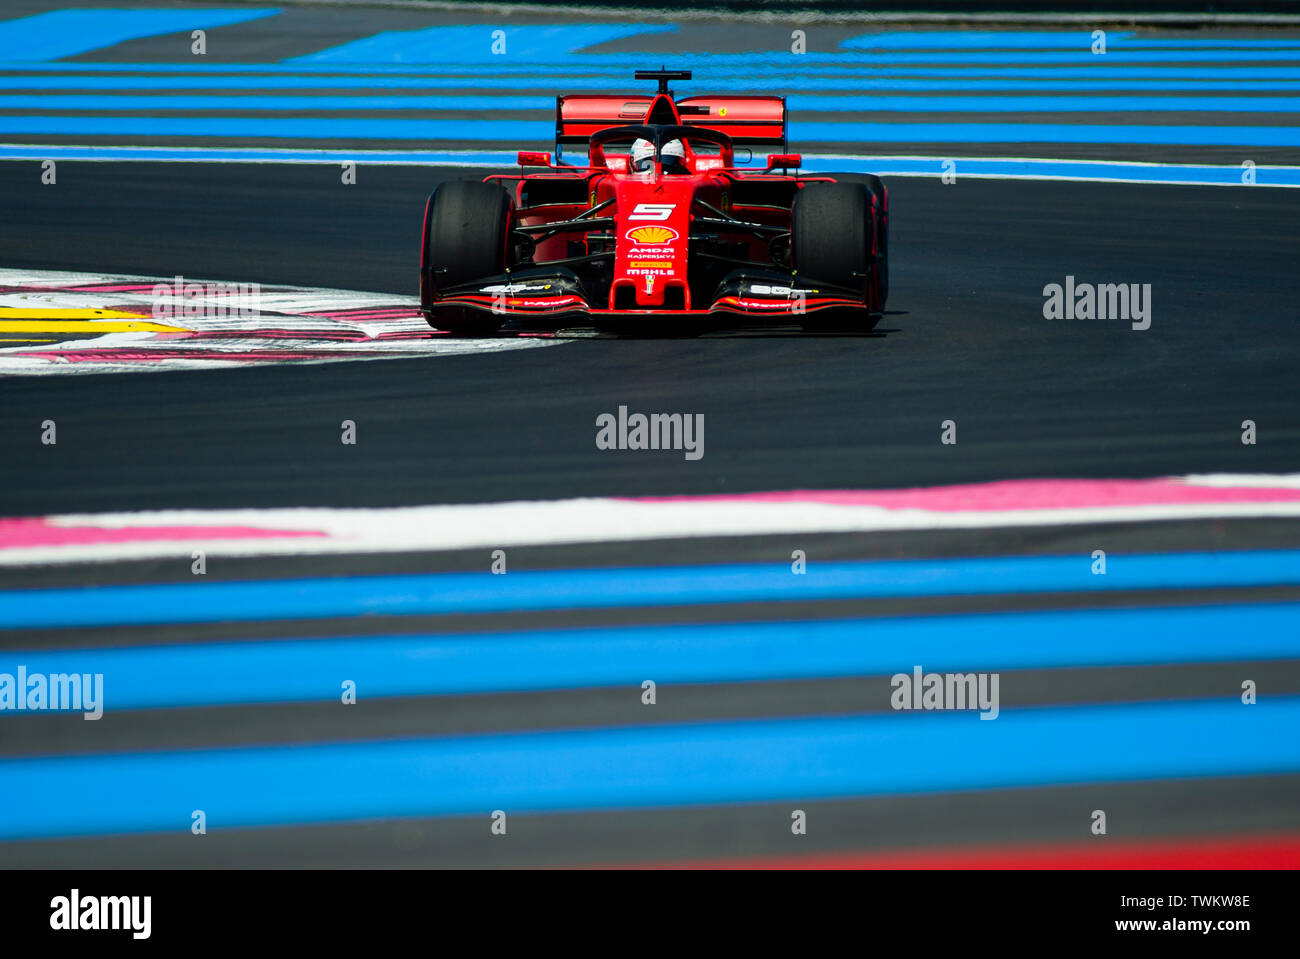 Marseille, France. 21st June 2019, Circuit Automobile Paul Ricard, Le Castellet, Marseille, France ; FIA Formula 1 Grand Prix of France, practise sessions; Sebastian Vettel of the Ferrari Team in action during free practice 1 Credit: Action Plus Sports Images/Alamy Live News Stock Photo